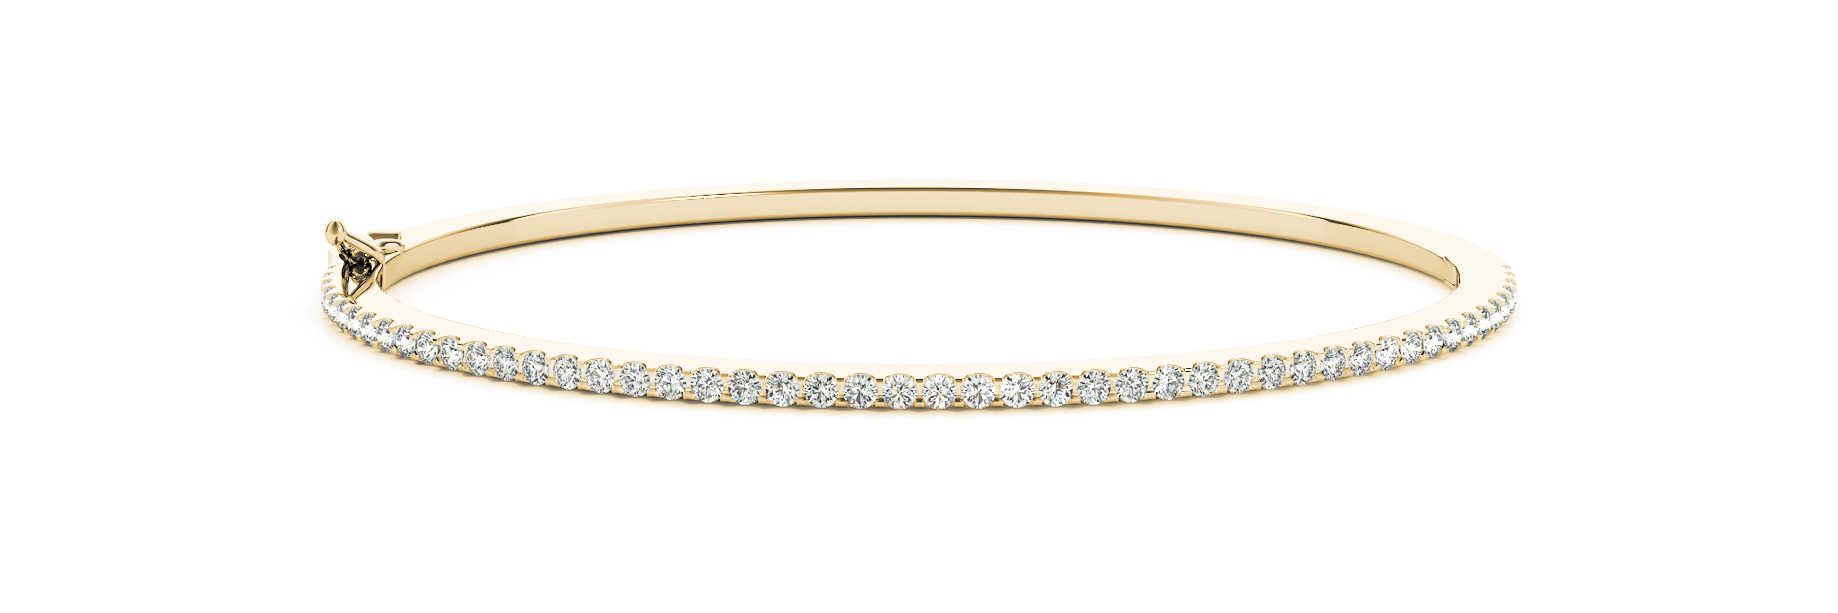 Diamond Bangle in Yellow Gold 0.82 Carat